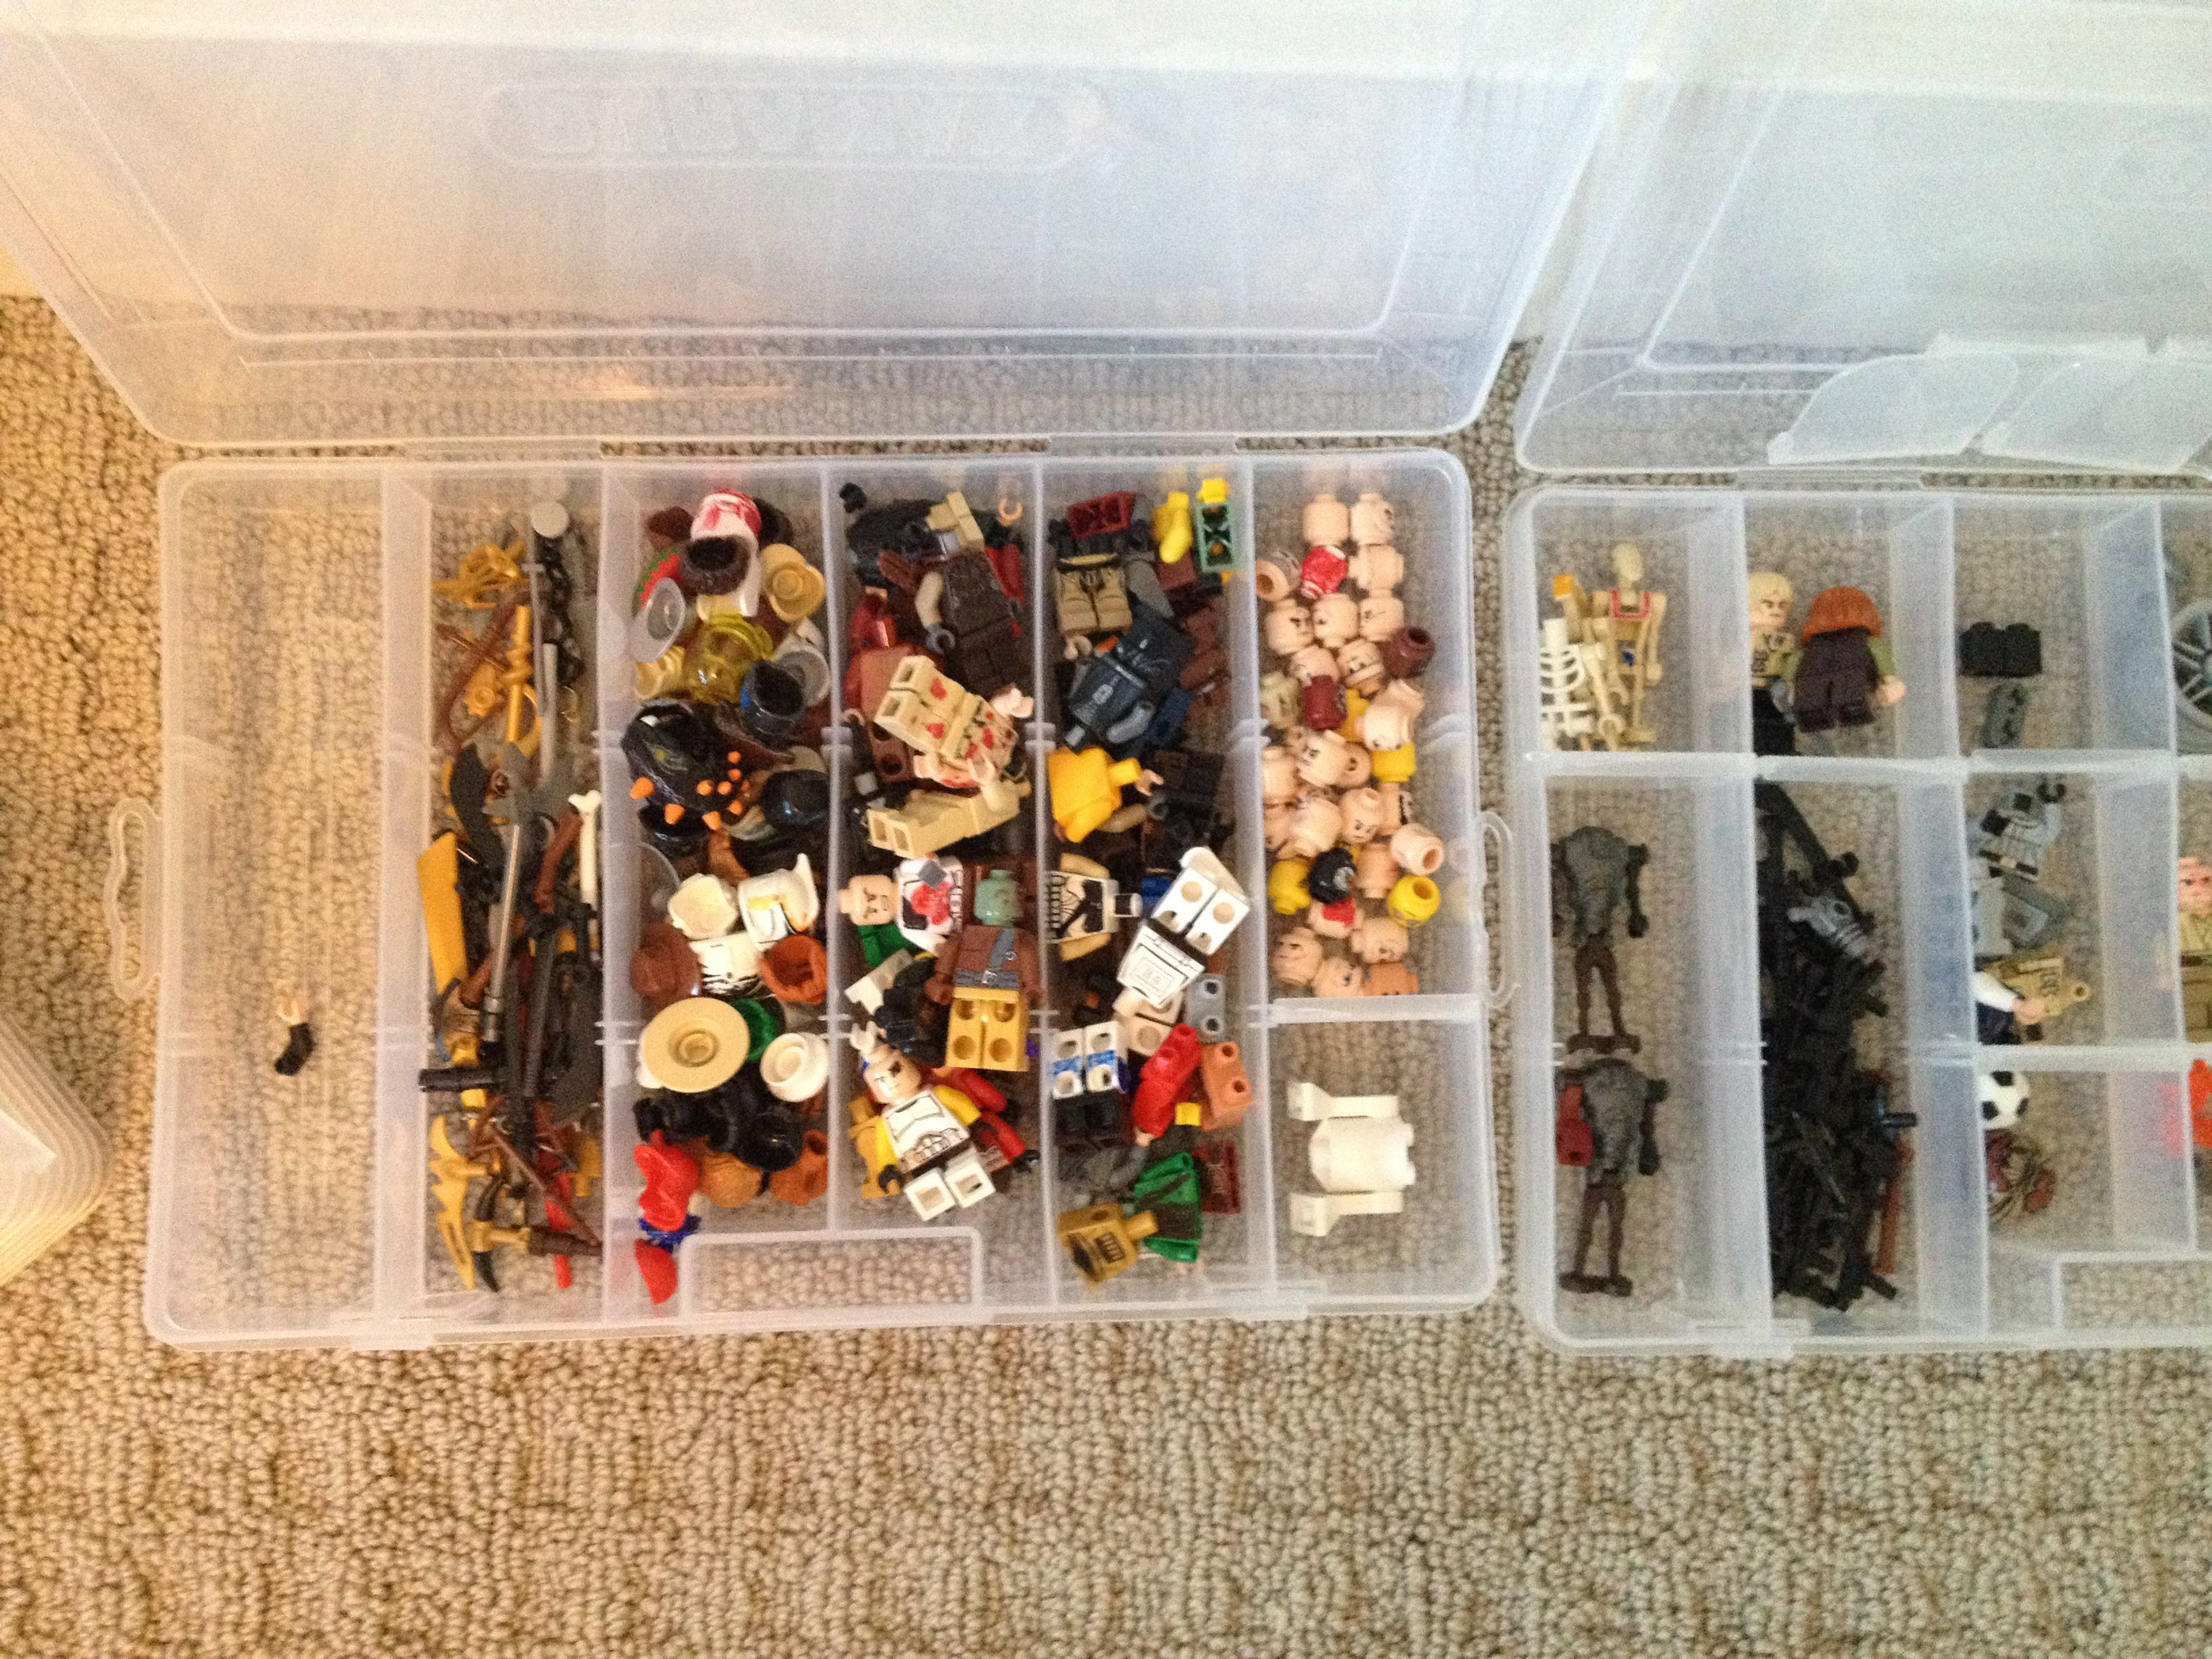 We Used Stackable Dollar Store Tackle Boxes To Help Sort The Lego Heads Bodies And Pieces For